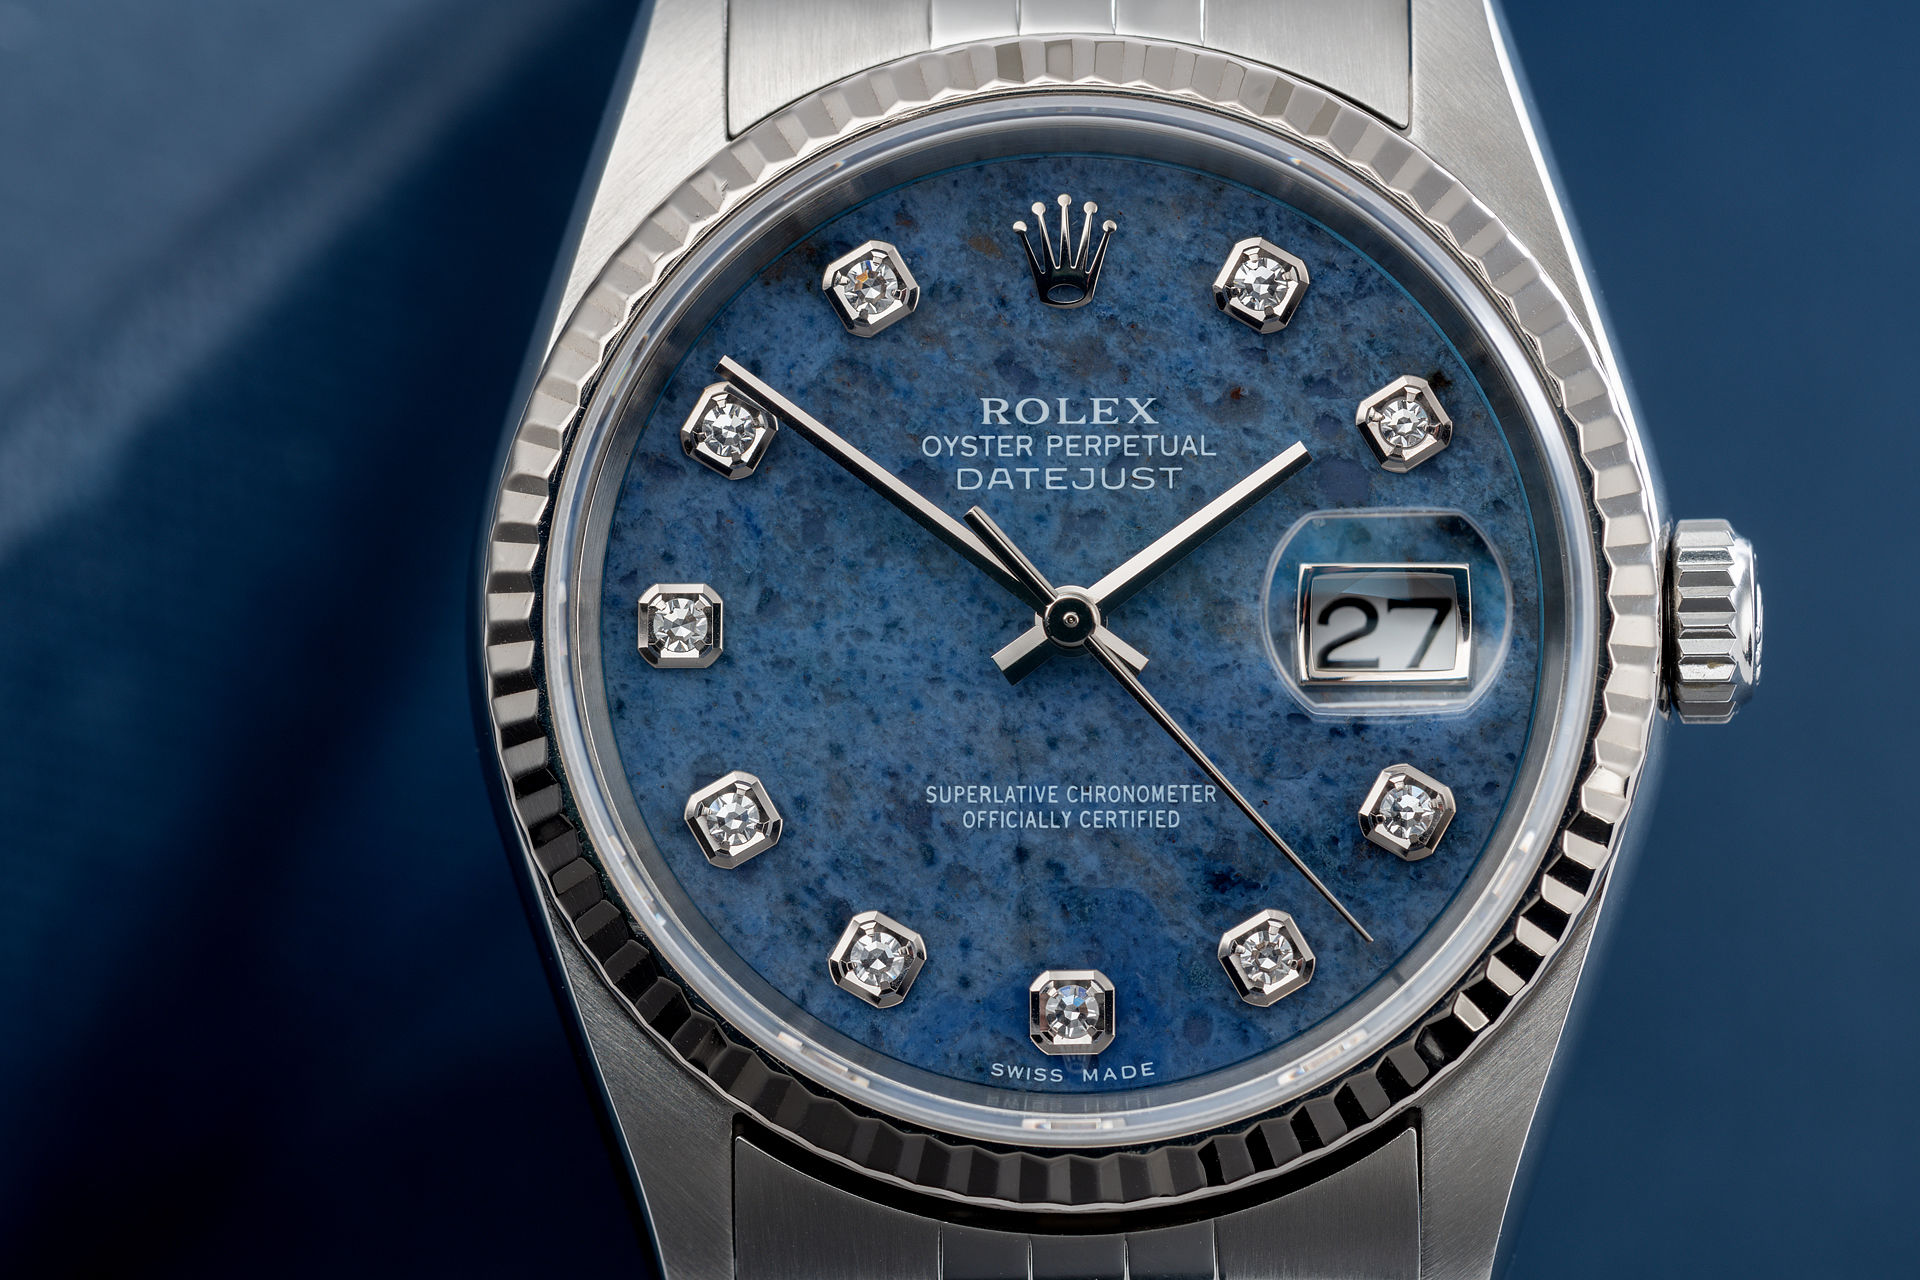 ref 16234 | Box and Certificate - Sodalite Dial | Rolex Datejust